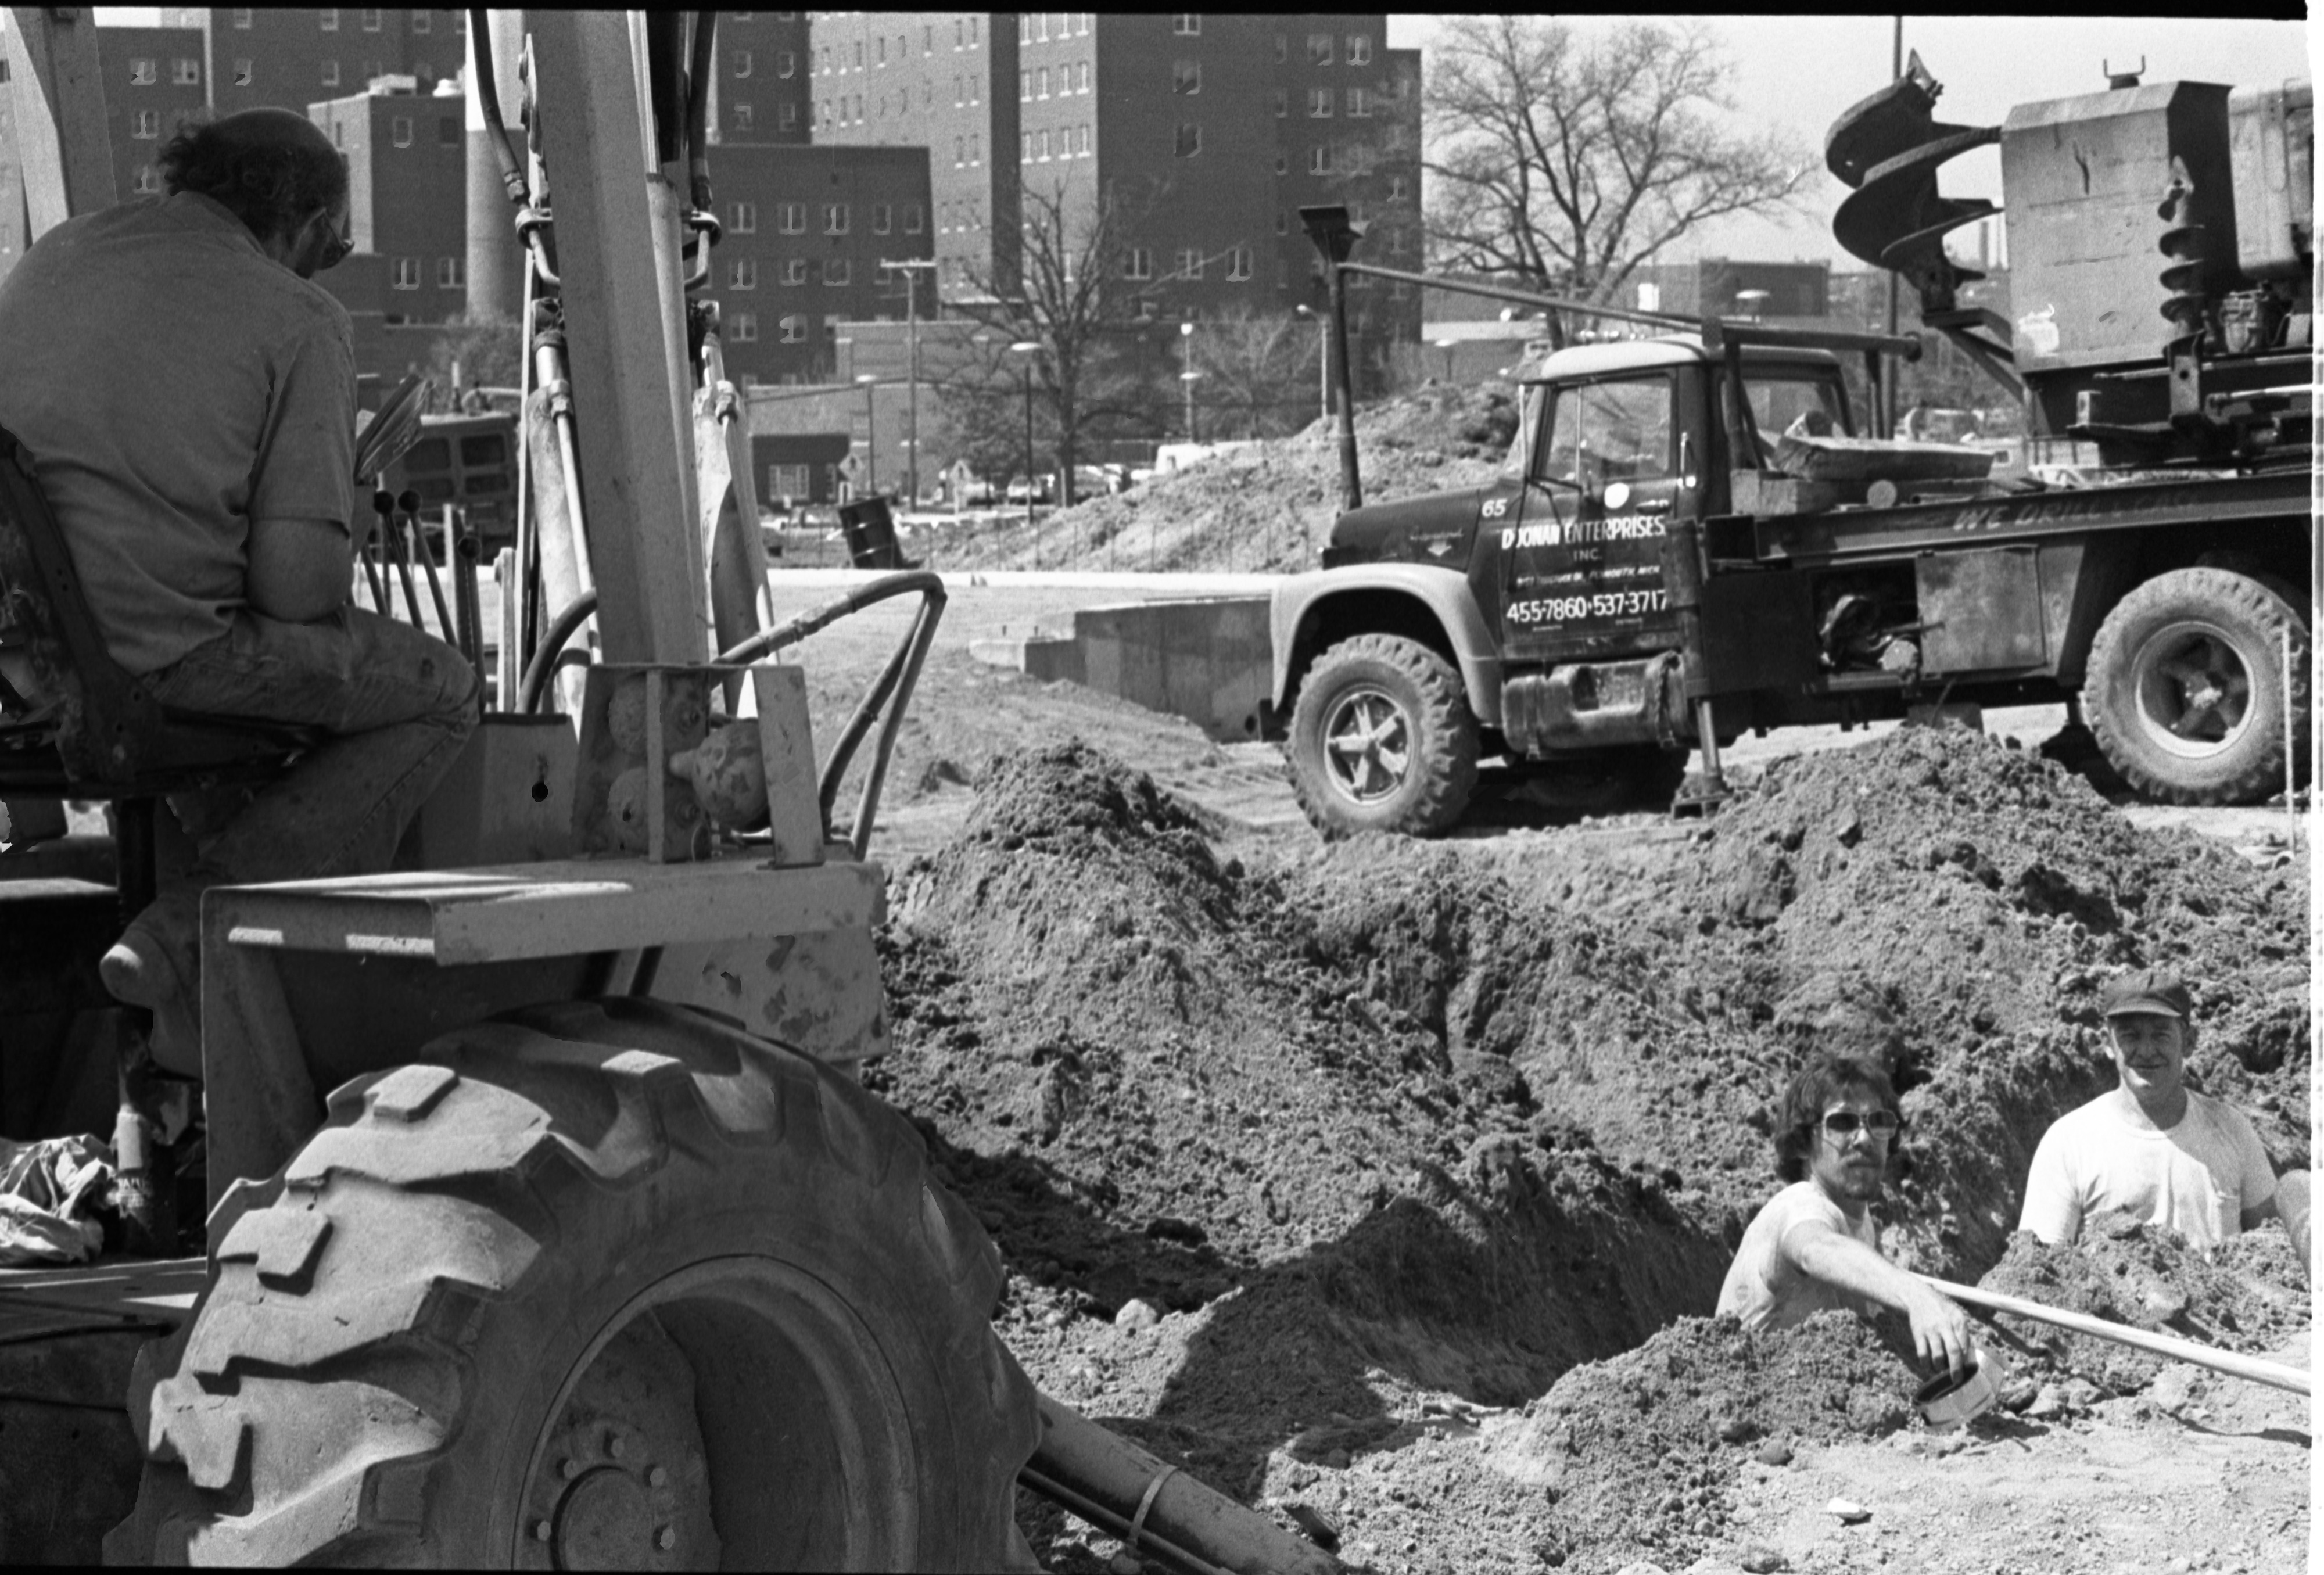 Construction Workers Dig Up Grounds For The Gerald R. Ford Presidential Library, May 11, 1979 image